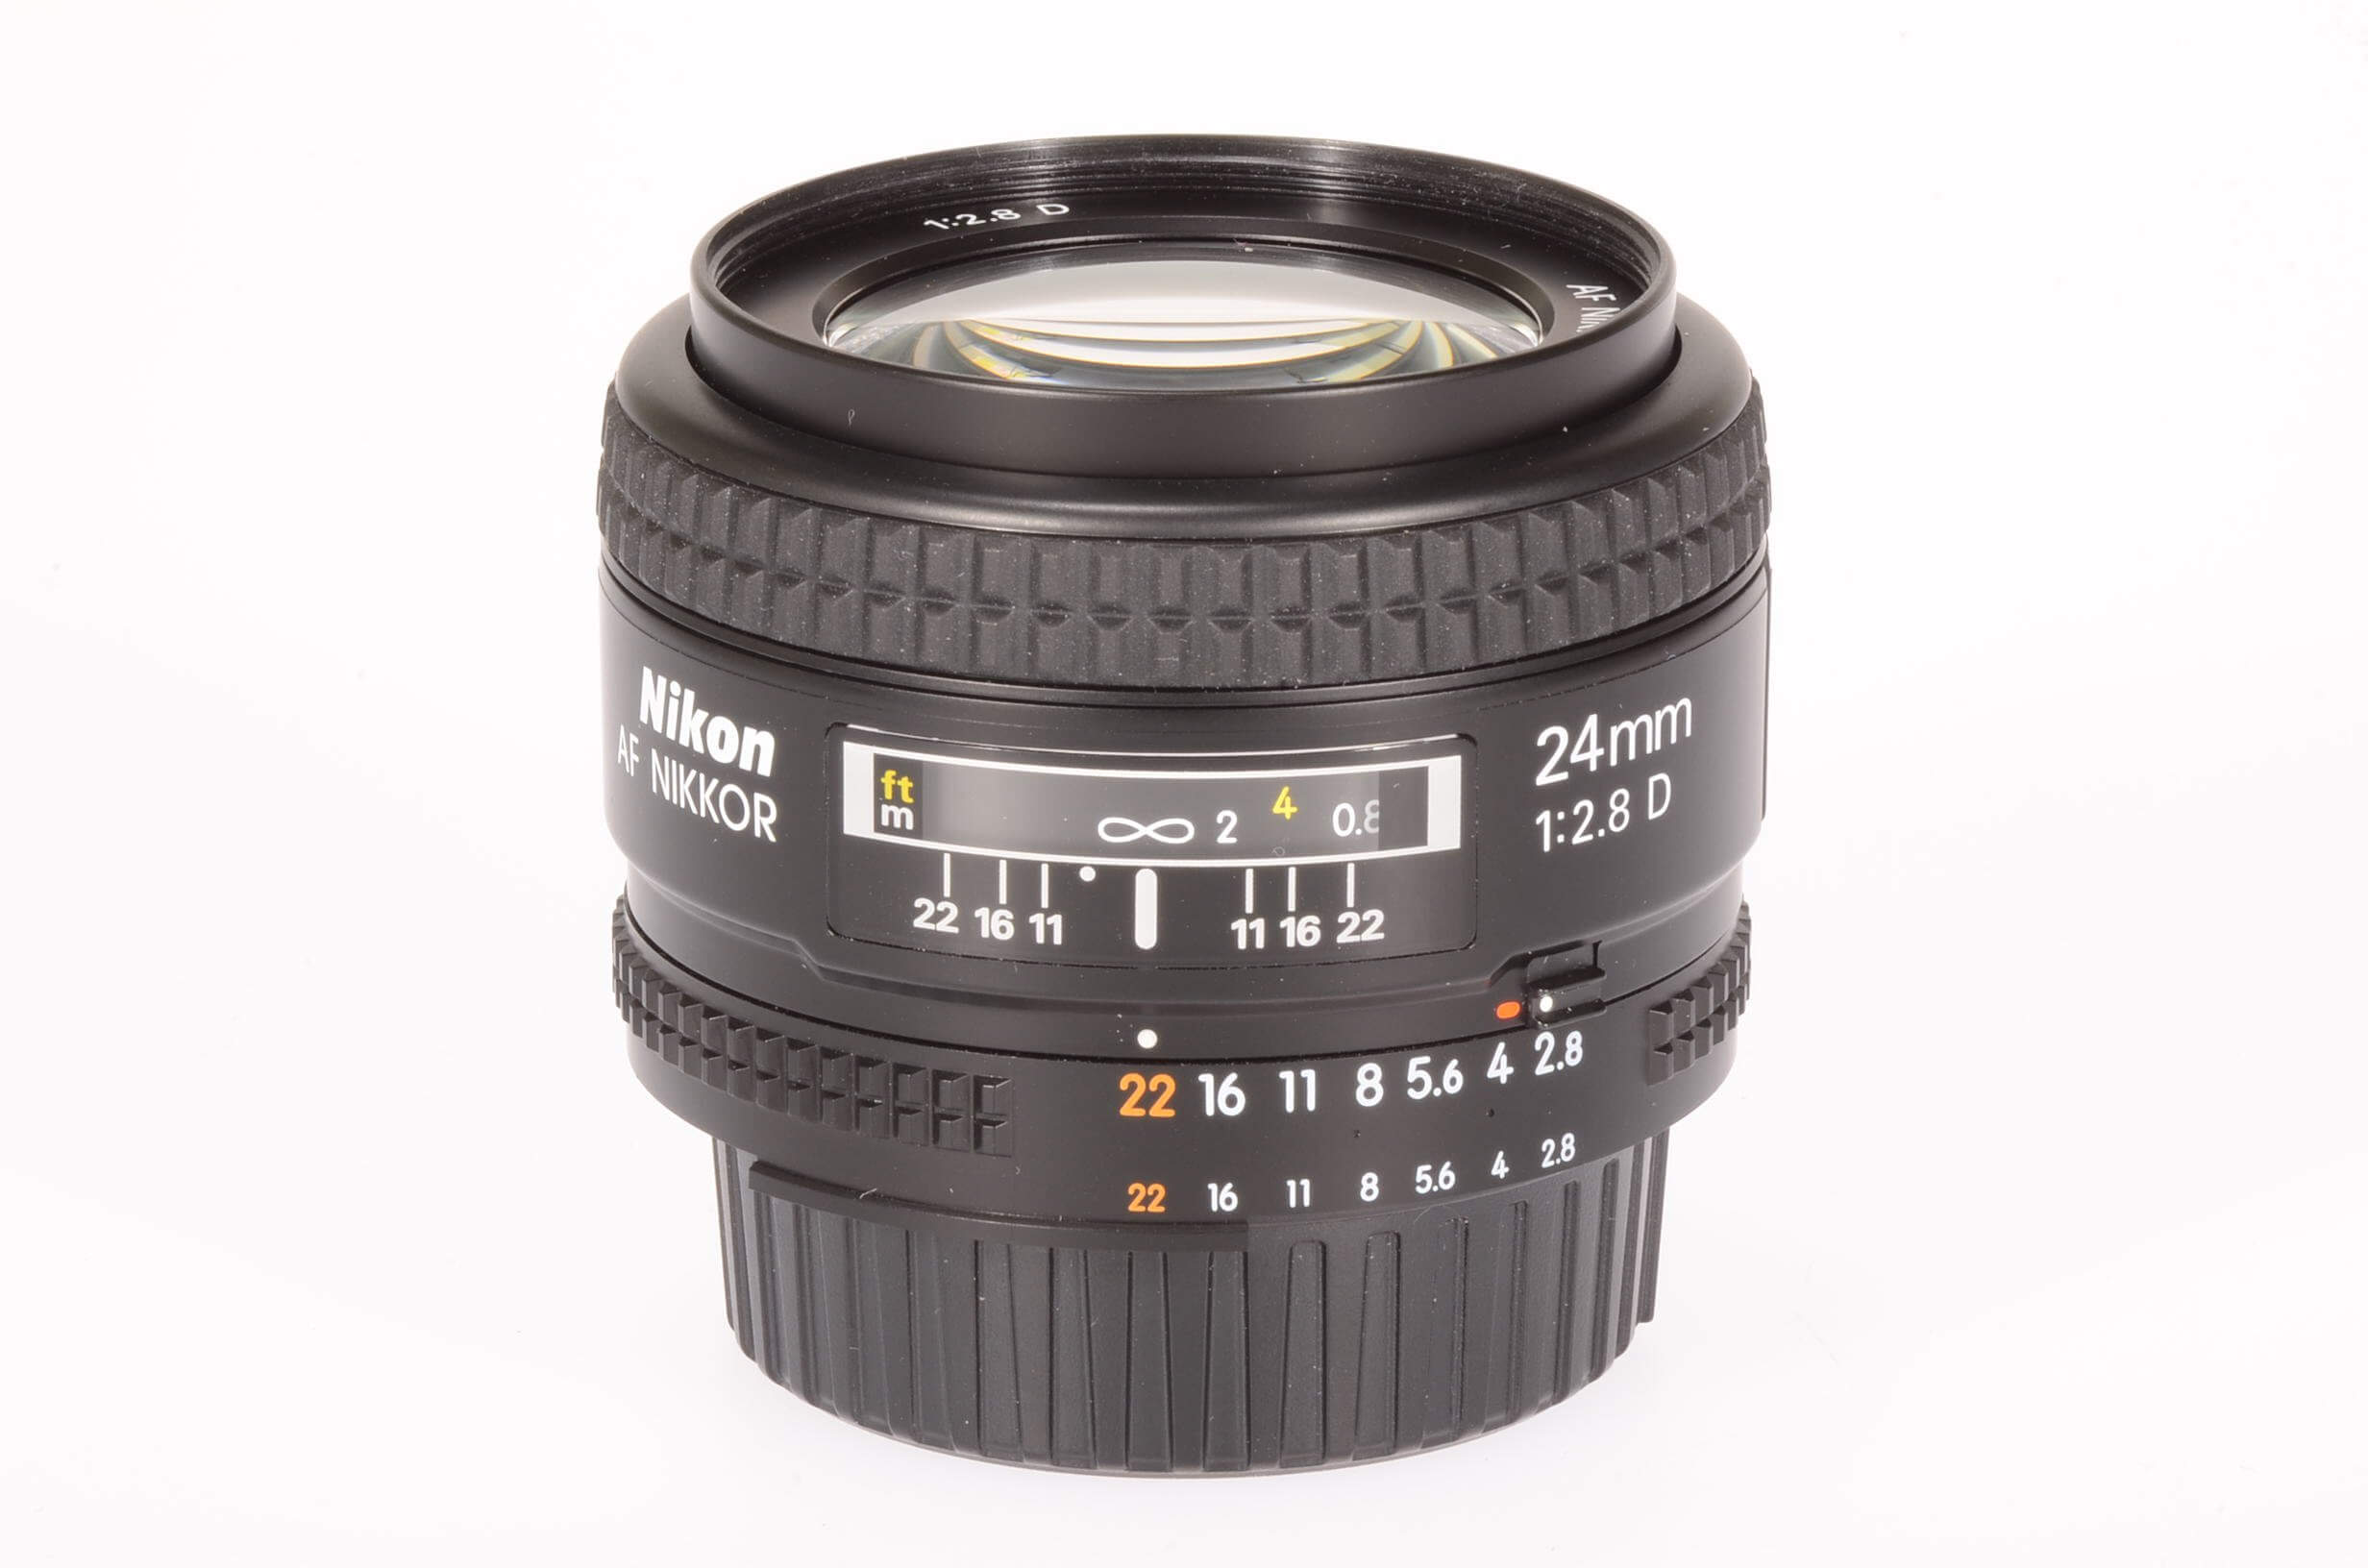 Nikon 24mm f2.8 AF D, boxed and 100% mint!